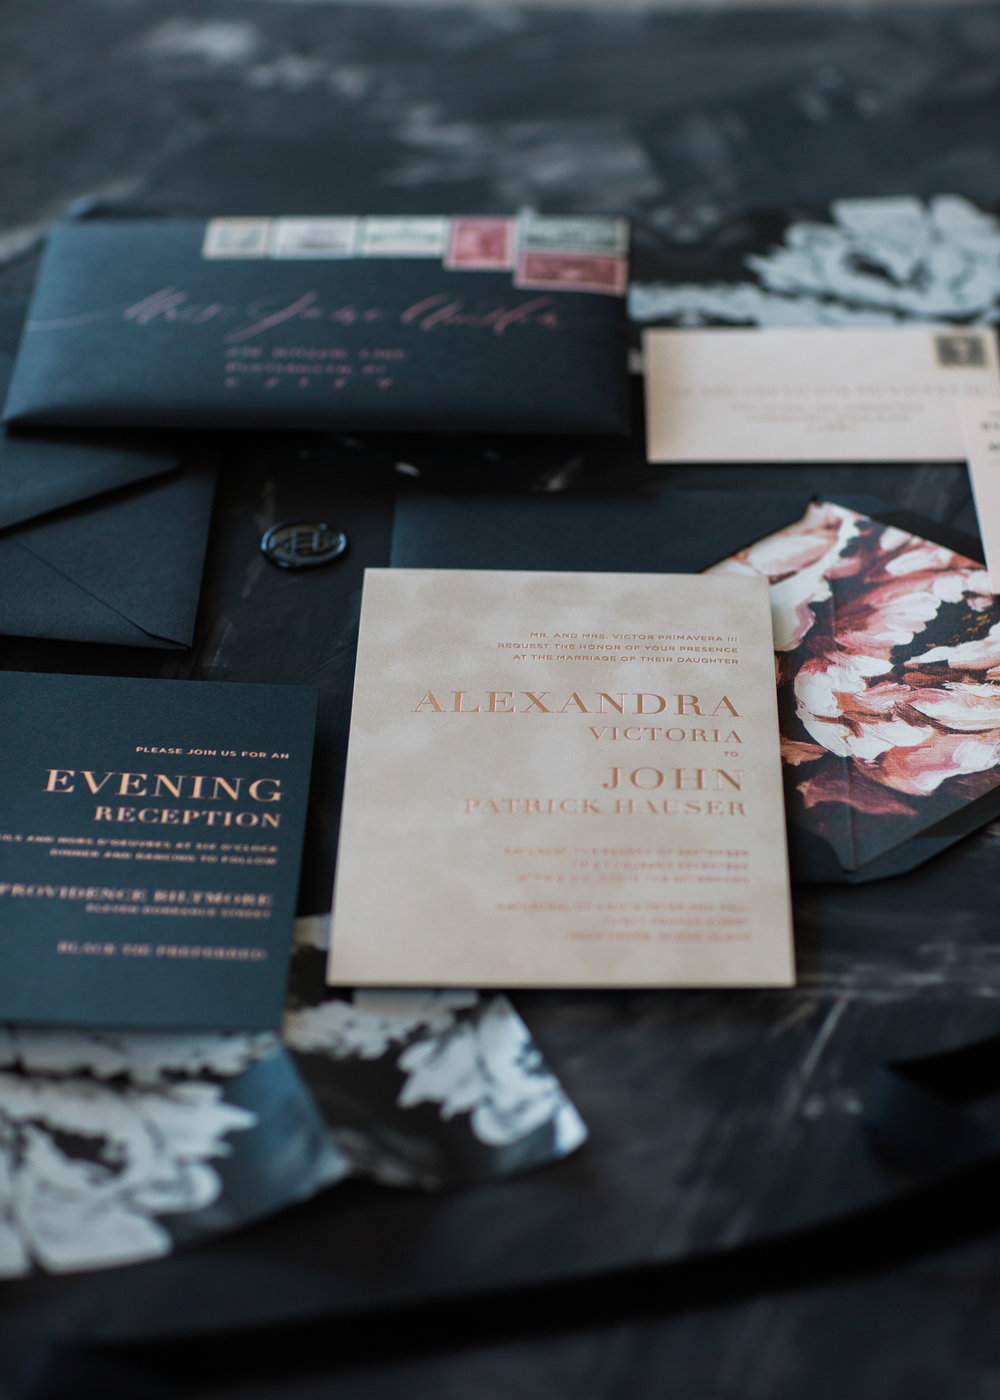 AP_Wedding_Invites_Rose-Gold-Foil-Newport-Moody-Floral-Invitations-champagne-and-ink-Molly-Lo-4.jpg